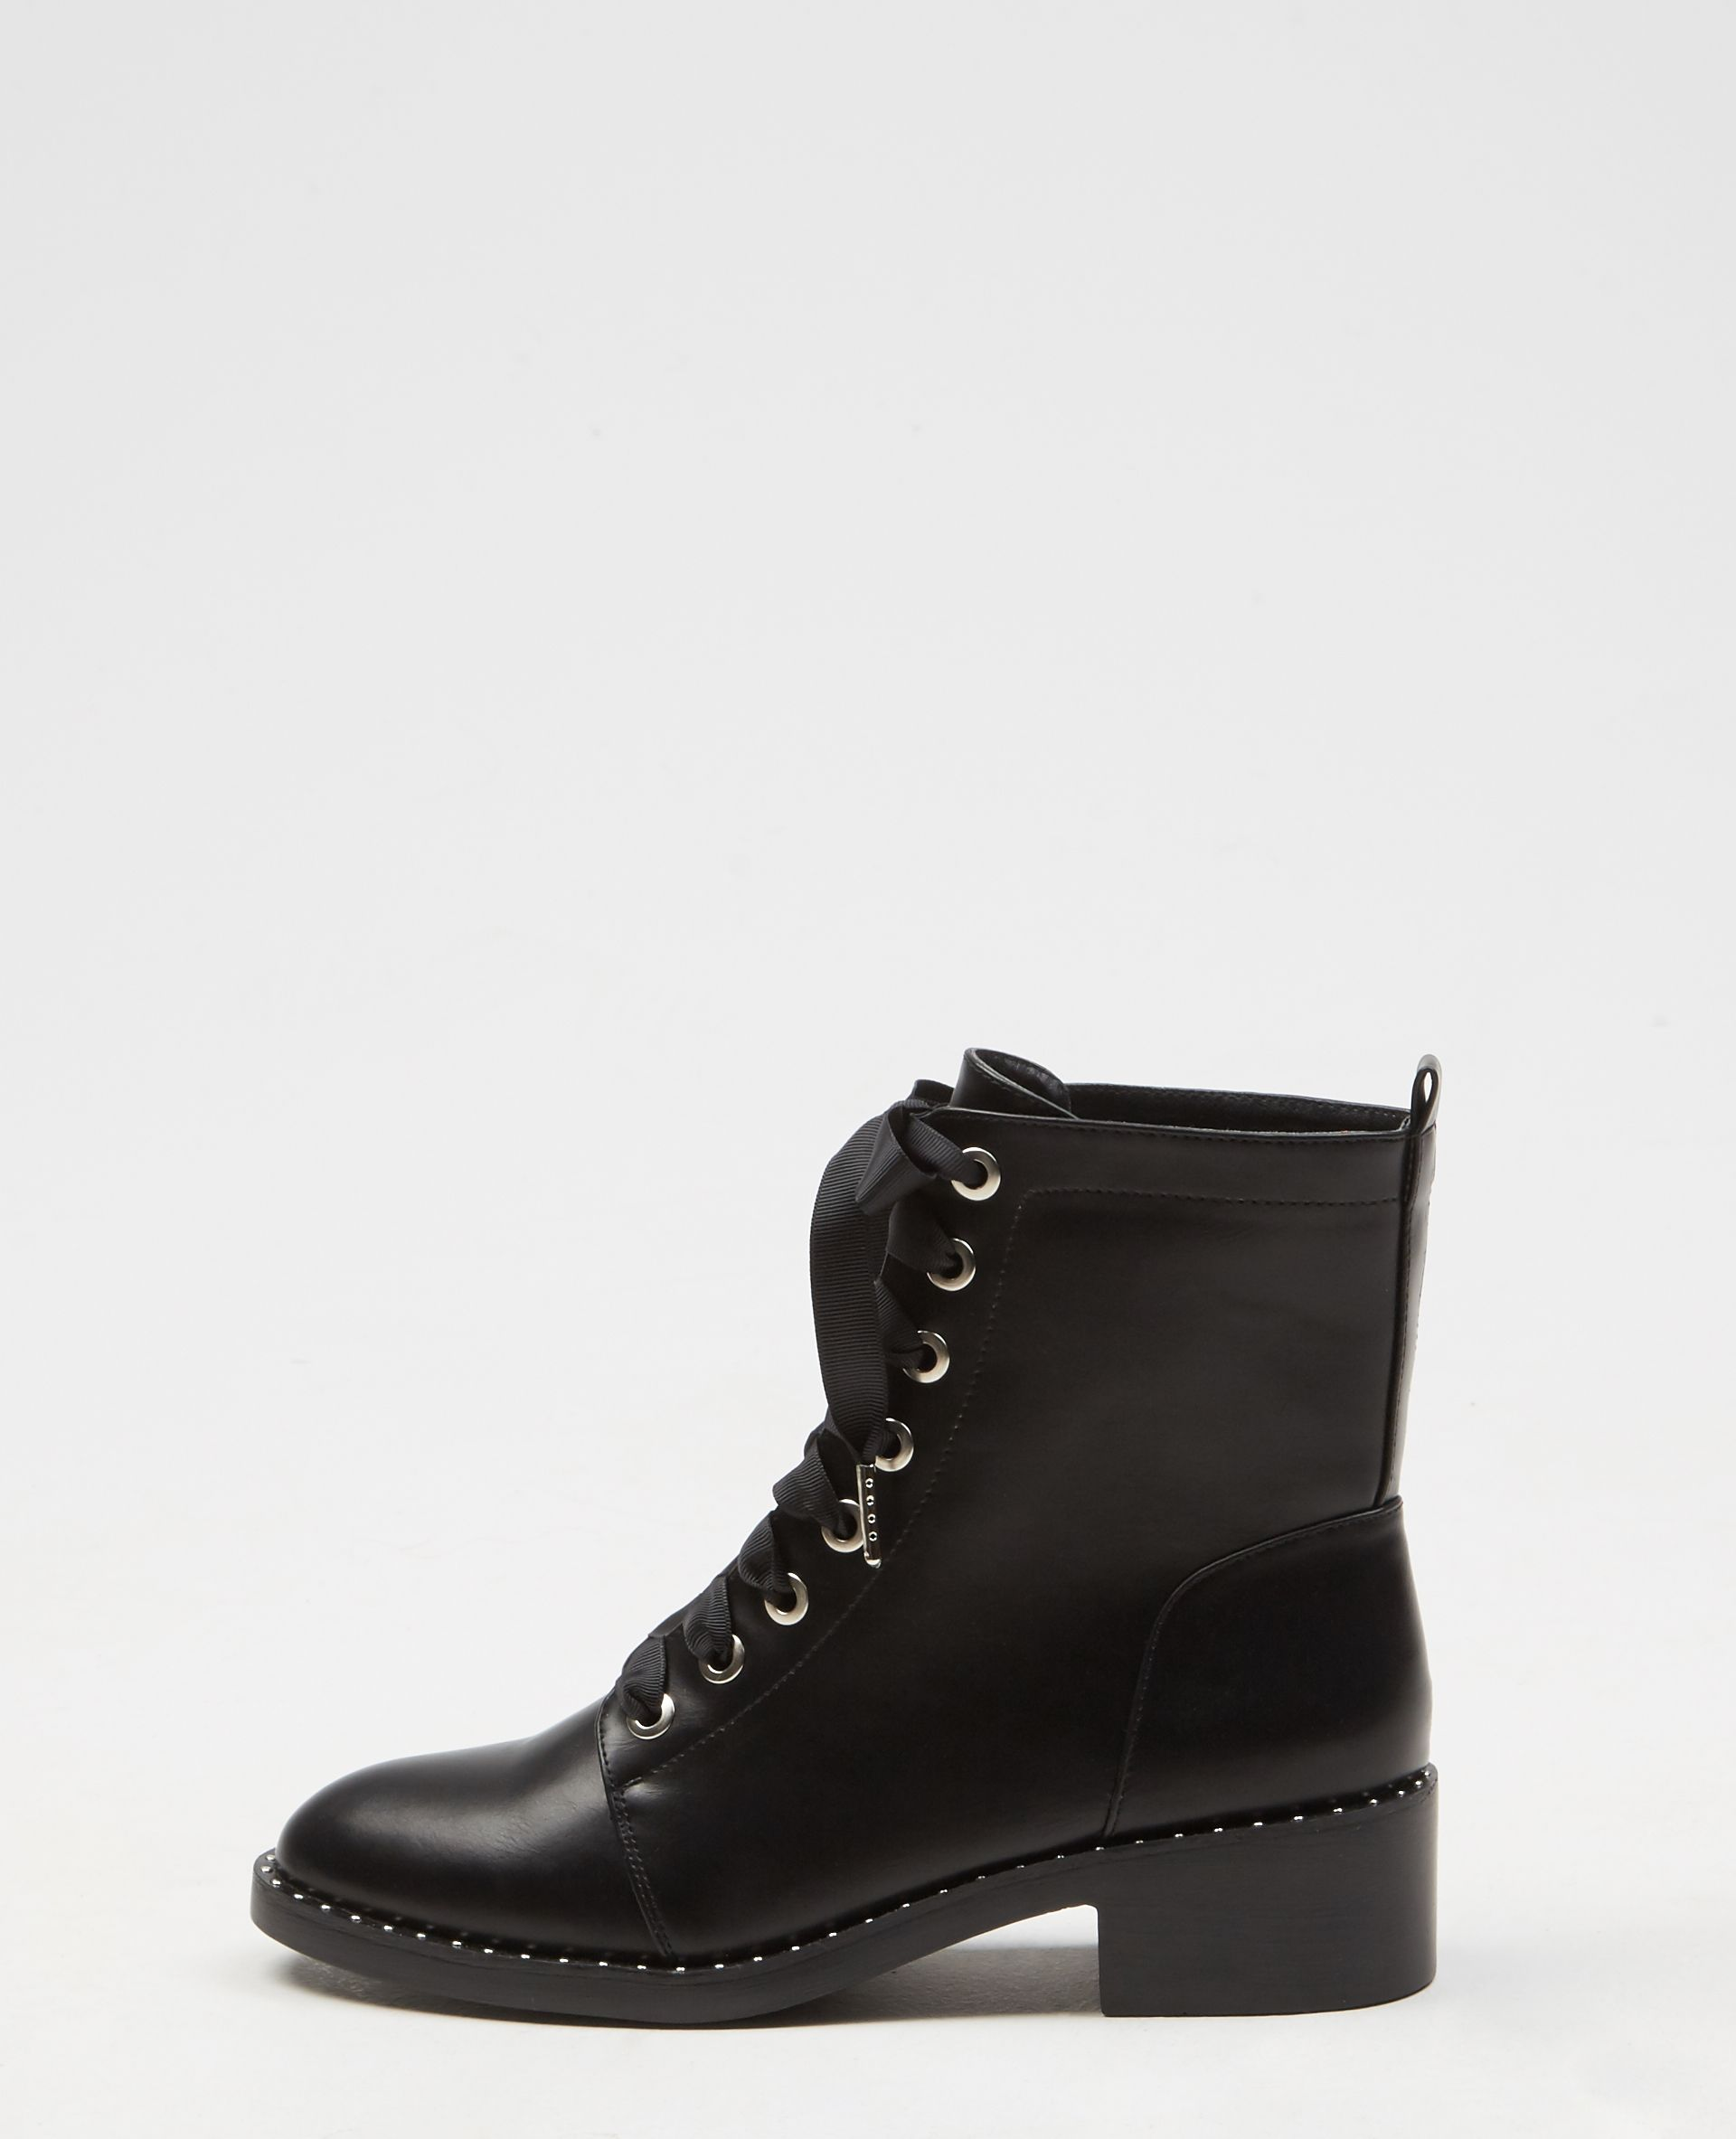 bottines rock lacets ruban | mode | pinterest | lacet, bottines et